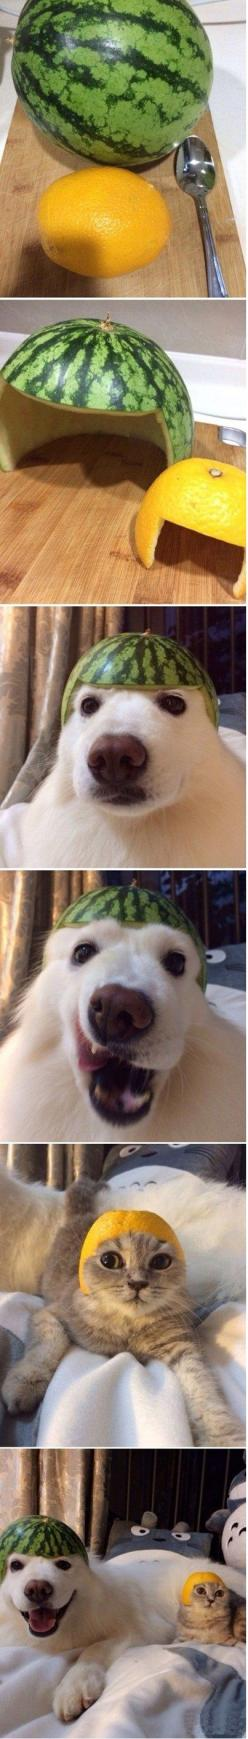 Melonpup Lemoncat < wow, for some reason, this totally cracks my shit up!!! :) >: Funny Animals, Cats, Giggle, Pet, Totoro Pillow, Funny Stuff, Dog, Fruit Helmets